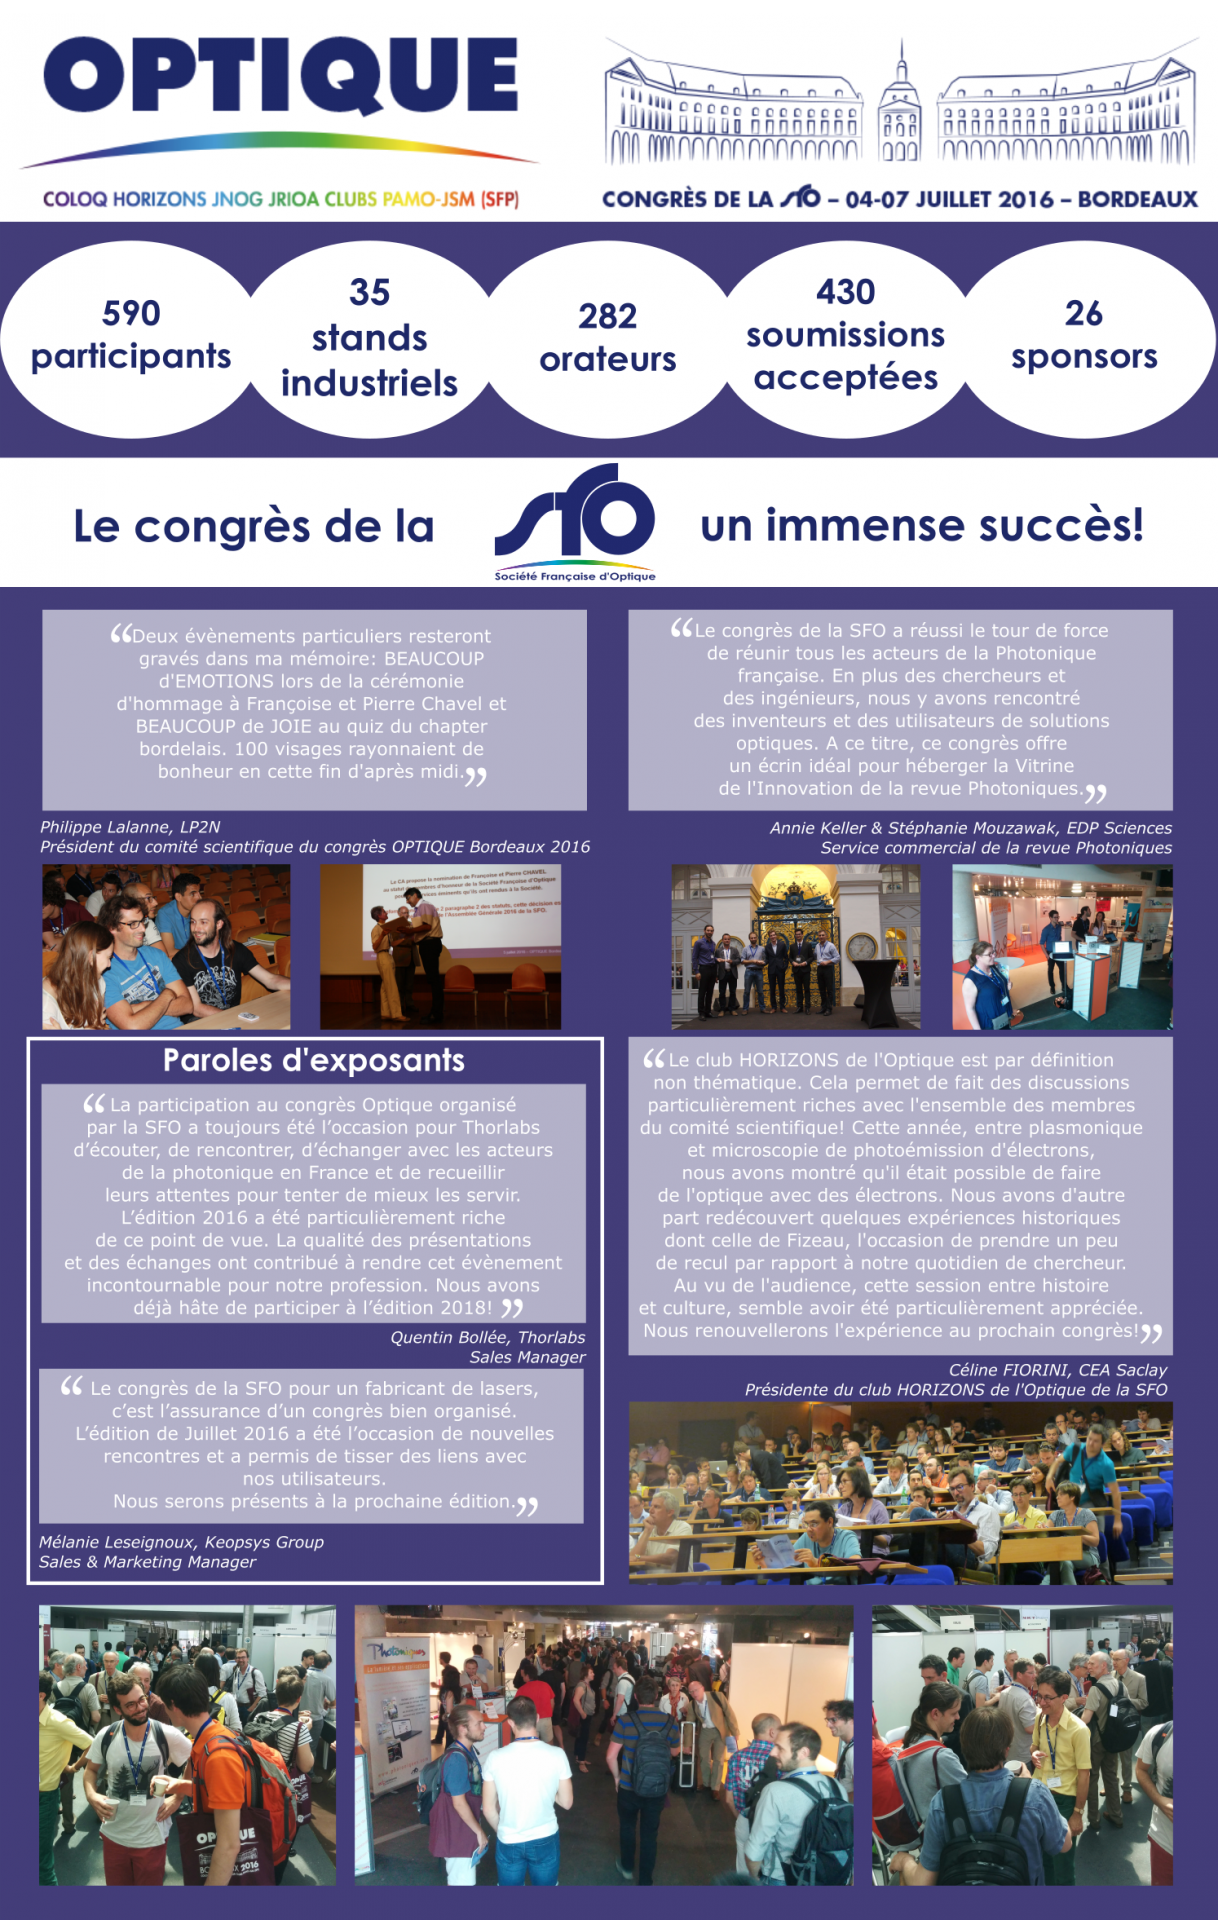 Flyer-Bilan OPTIQUE Bordeaux 2016